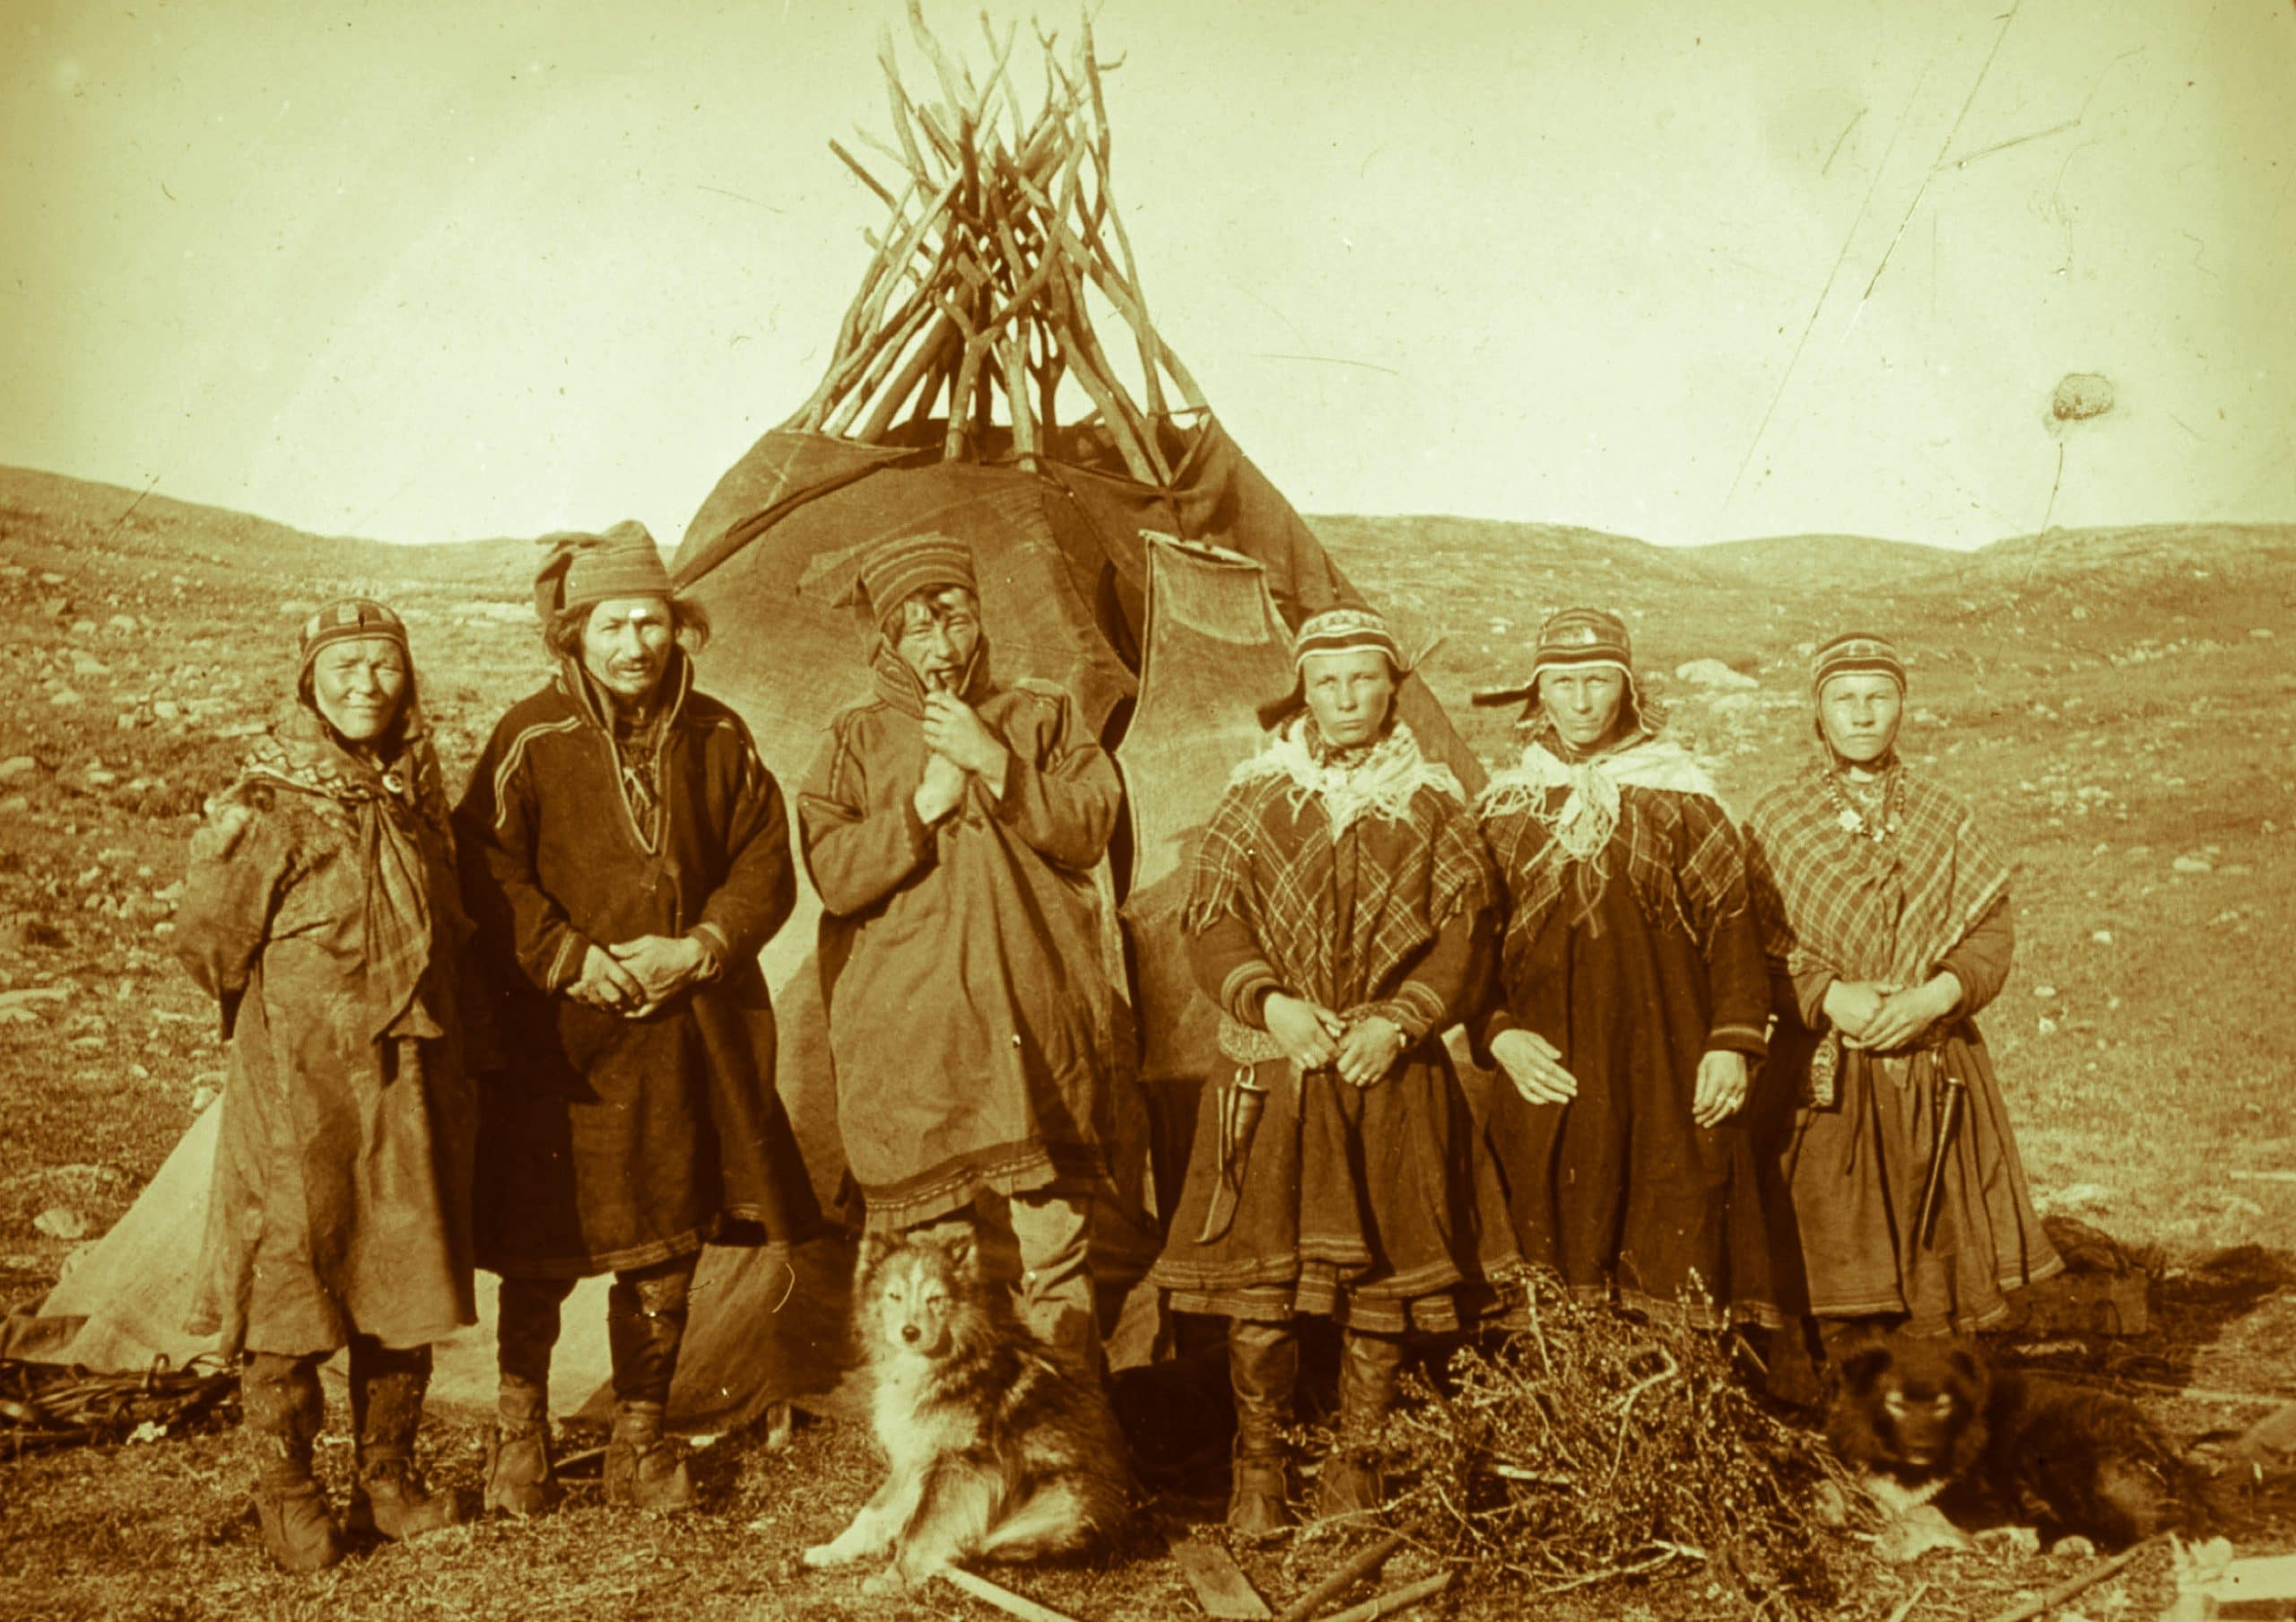 Sami people | injustice and the king's apology | Sapmi